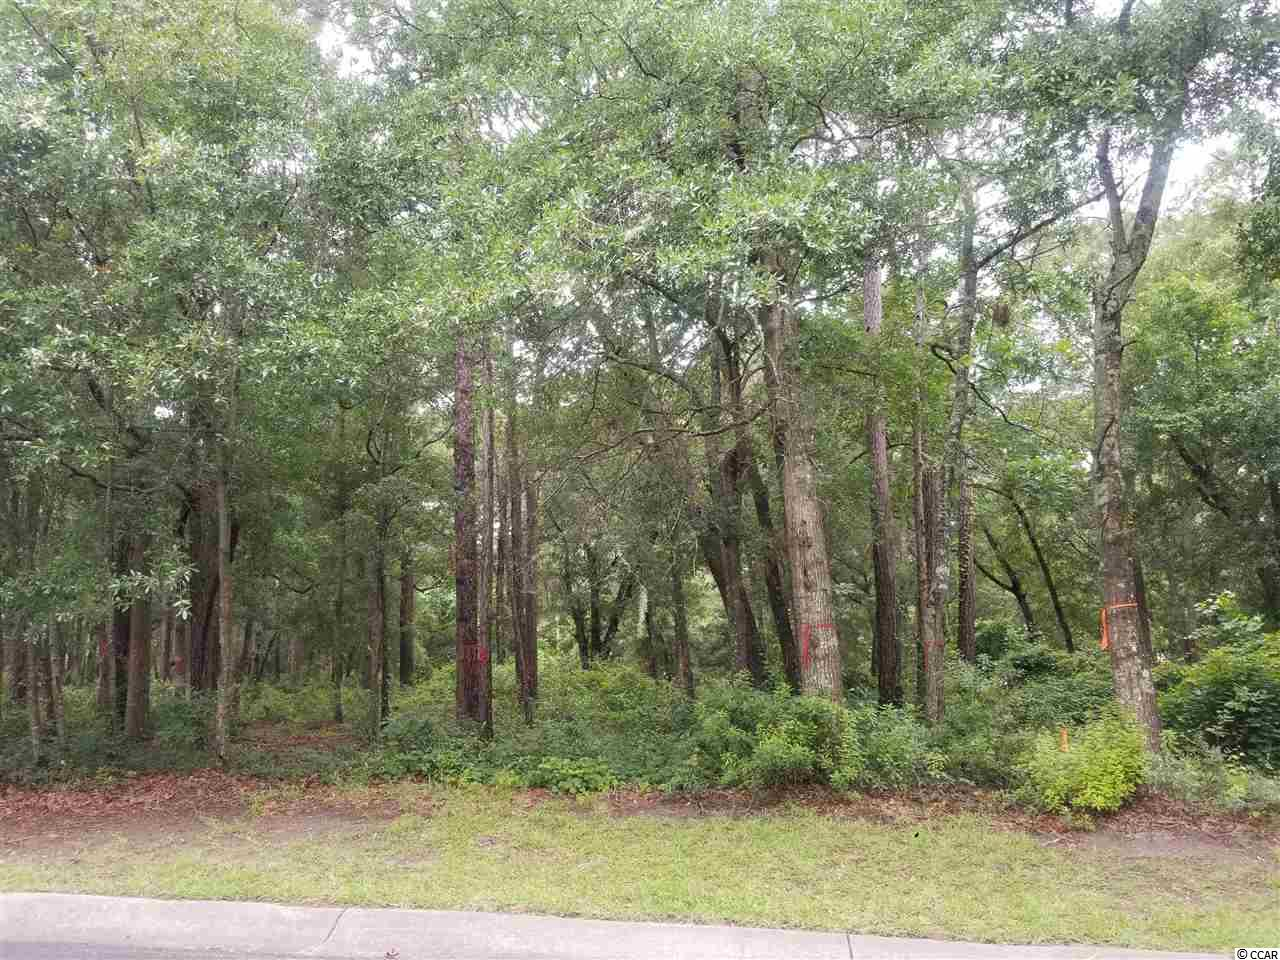 Are you looking for a large lot to build that dream home. This lot is located on the Bluffs side of The gated community Tidewater Plantation. This prestigious development boasts a beautiful Golf Course that wraps around the Intracoastal waterway and the beautiful Marshes overlooking Cherry Grove. The lot is .41 of an acre allowing for a great home and a beautiful large space for front and back yards. Tidewater Plantation has the Tidewater Golf Course, 3 beautiful swimming pools, Numerous tennis courts, a fitness center and bocce ball.  The best part of living at Tidewater is a Private Beach Cabana just for the residents at Tidewater Plantation. No more looking for a place to park at the beach, no more public restrooms. Come look at this lot and dream the life of luxury along the Coastal Waterways of the beautiful Atlantic.